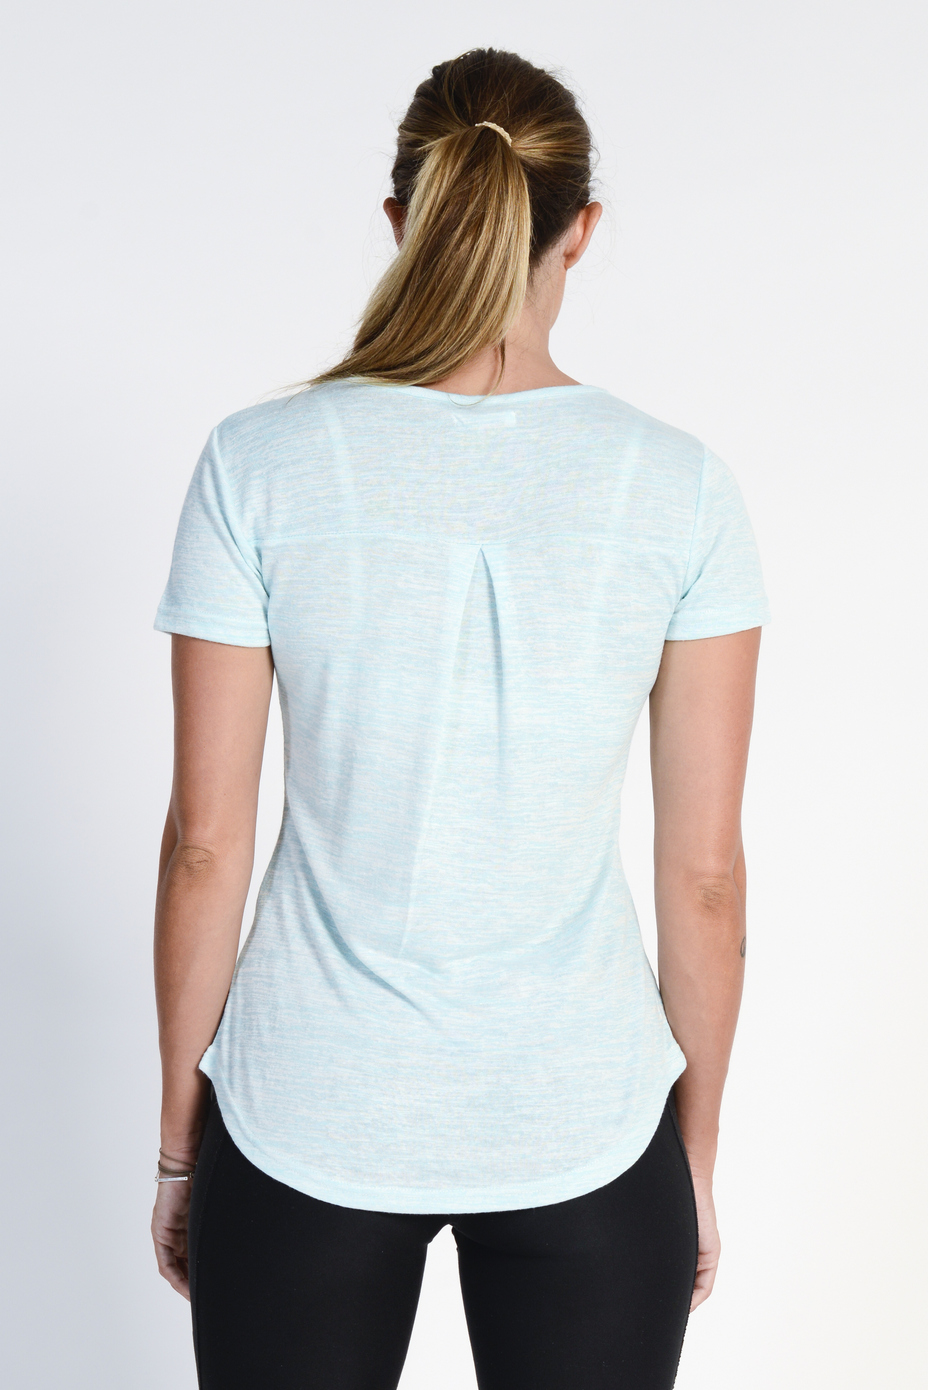 Ladies' Bamboo Cotton Blend Tee- LT Blue